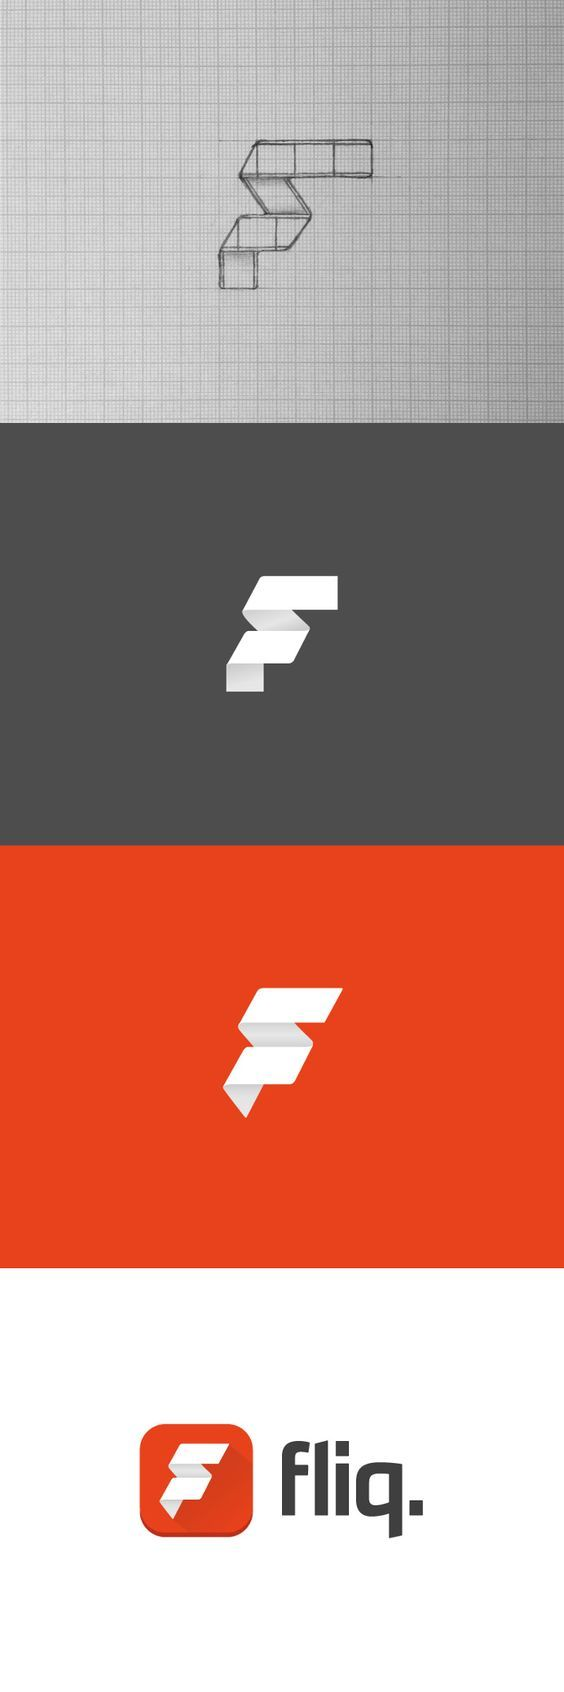 Austrailian Fliq Movie App. This picture shows how they went from folded film to what is now. Guess it would of been too typical to keep the film look.: